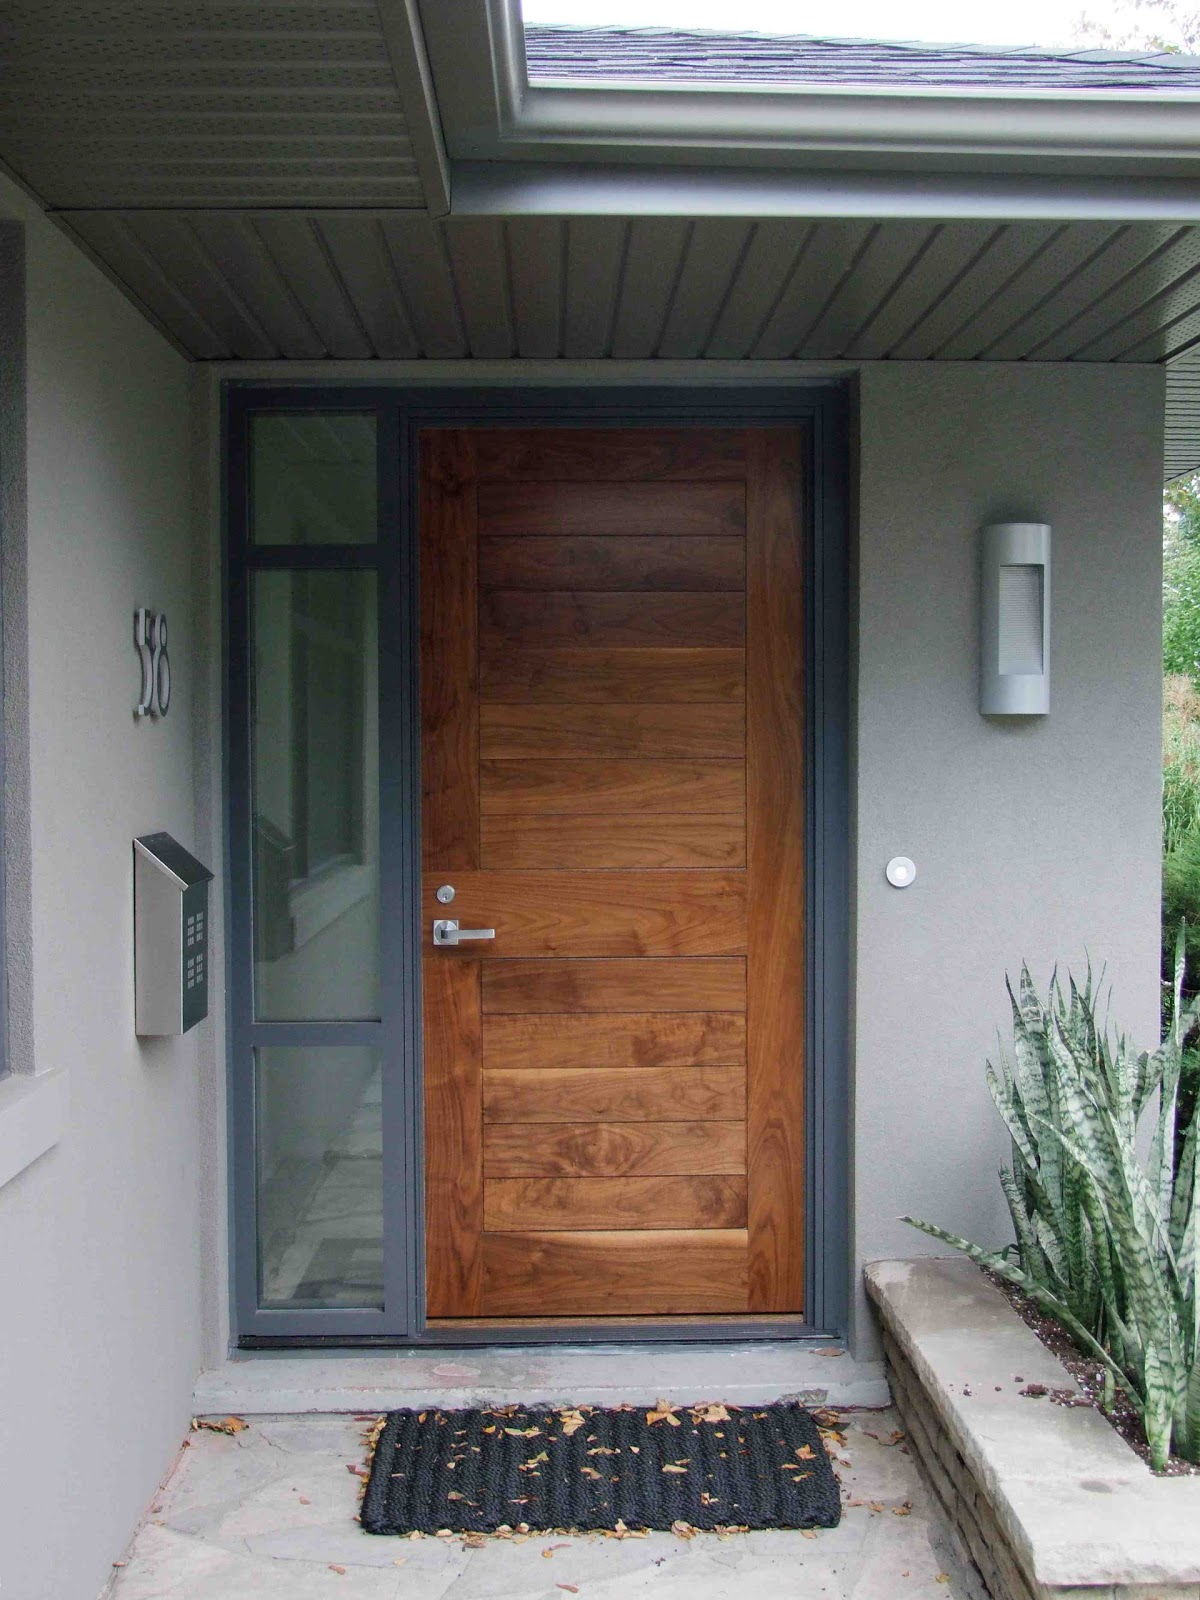 Creed 70 39 s bungalow makes a modern impression for Entrance door frame